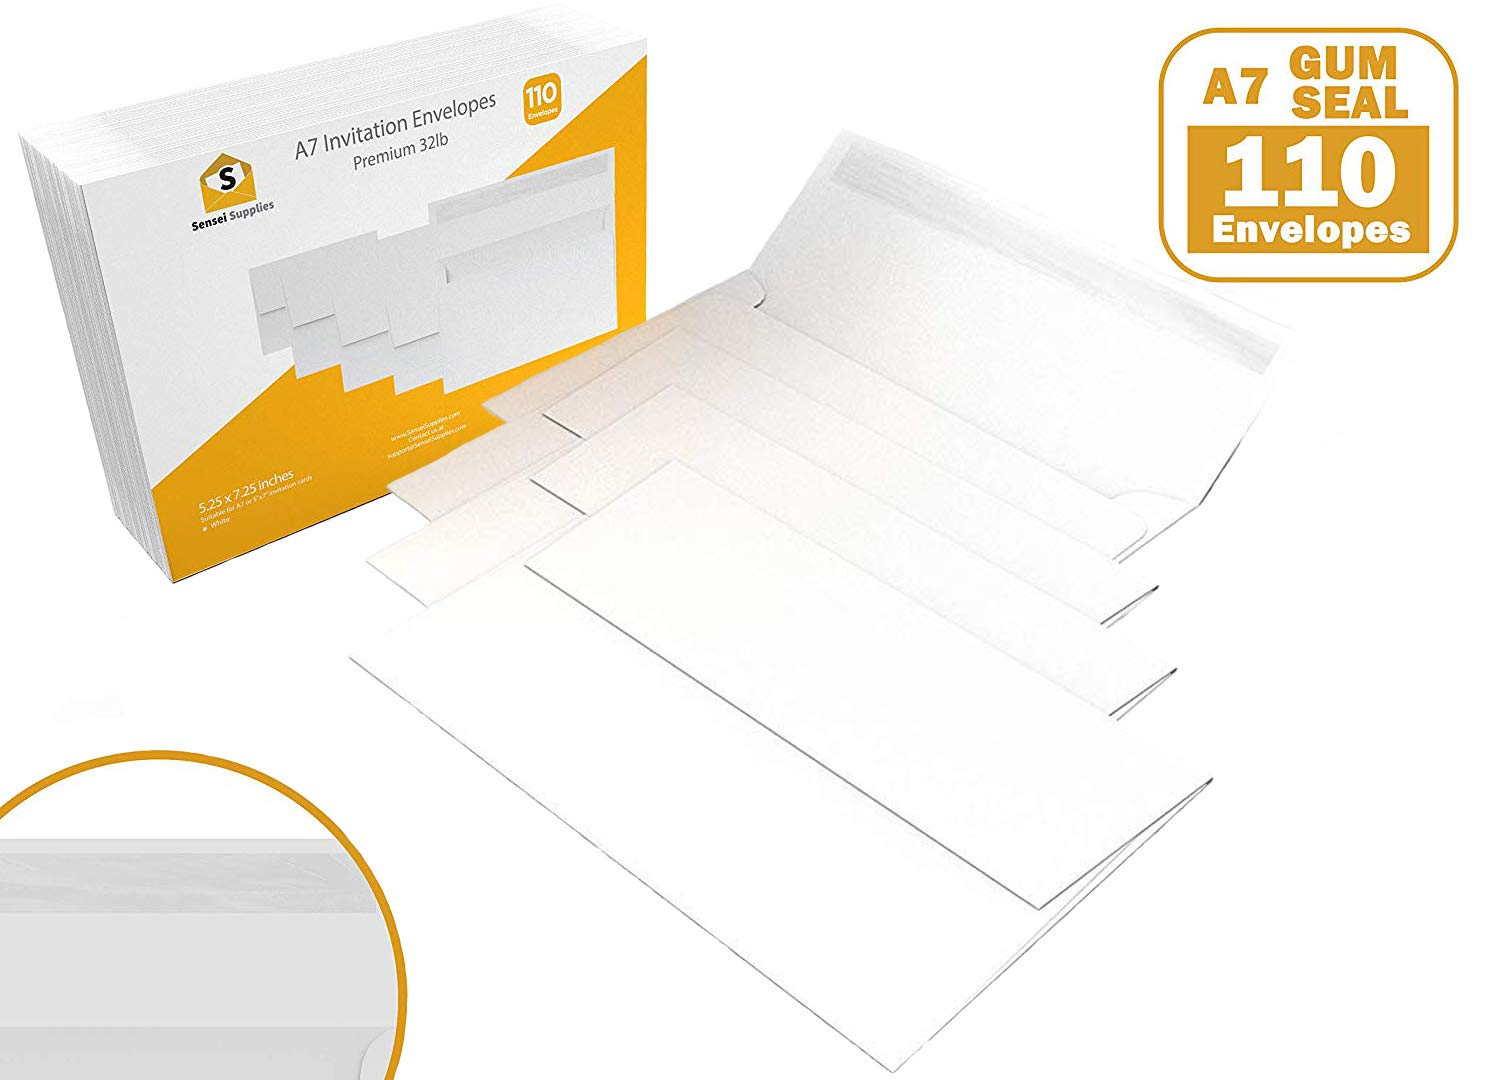 3 5//8 x 5 1//8 inches 55 3.5x5 White Gum Seal Invitation Envelopes for 3.5x5 Cards A1